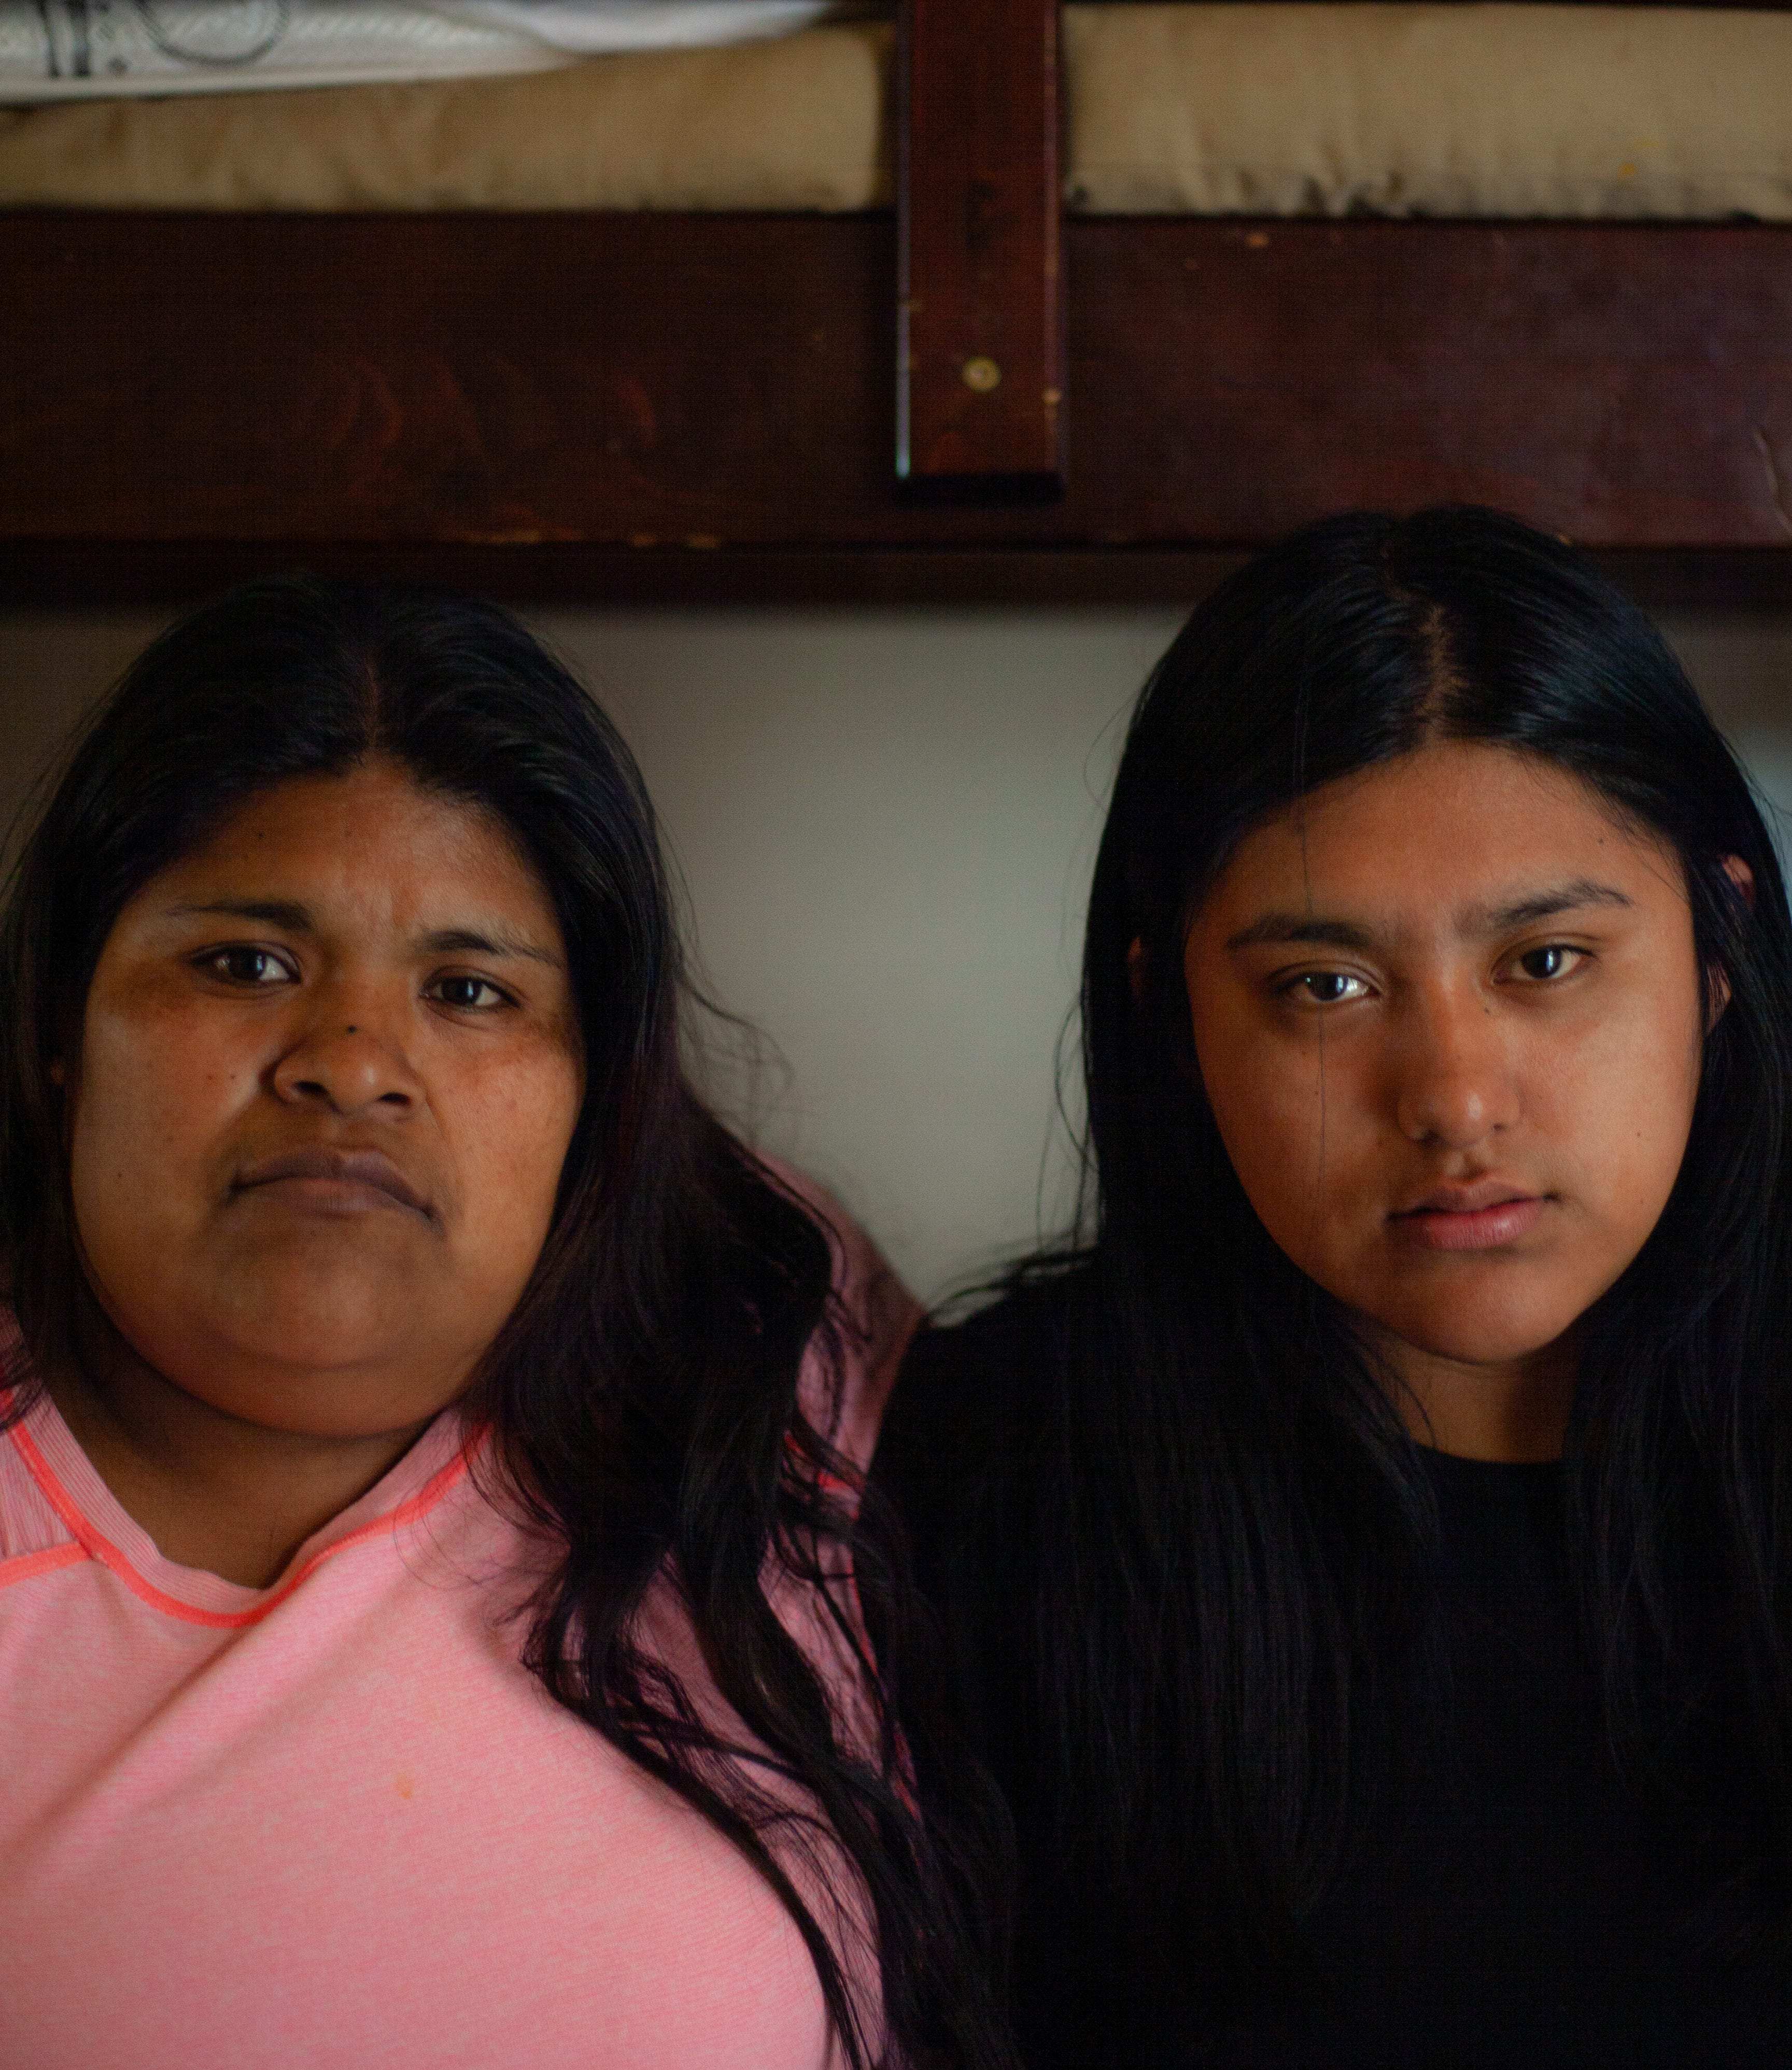 Resi Salvador, right, and her step-mother, Constanza Salvador, share a small apartment on the North Side of Salinas with seven others.